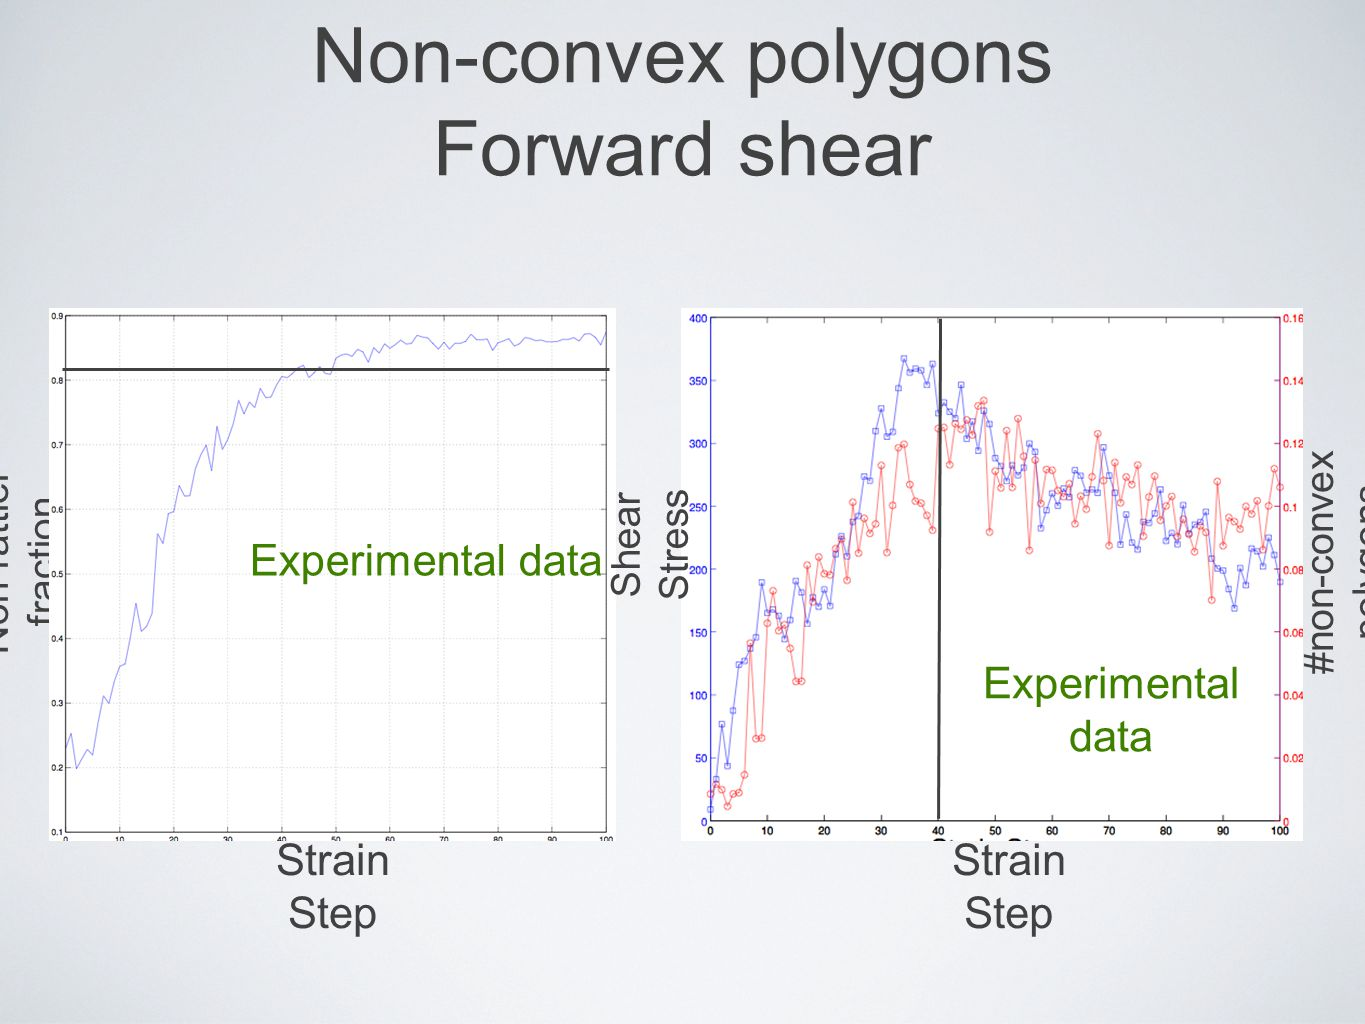 Non-convex polygons Forward shear